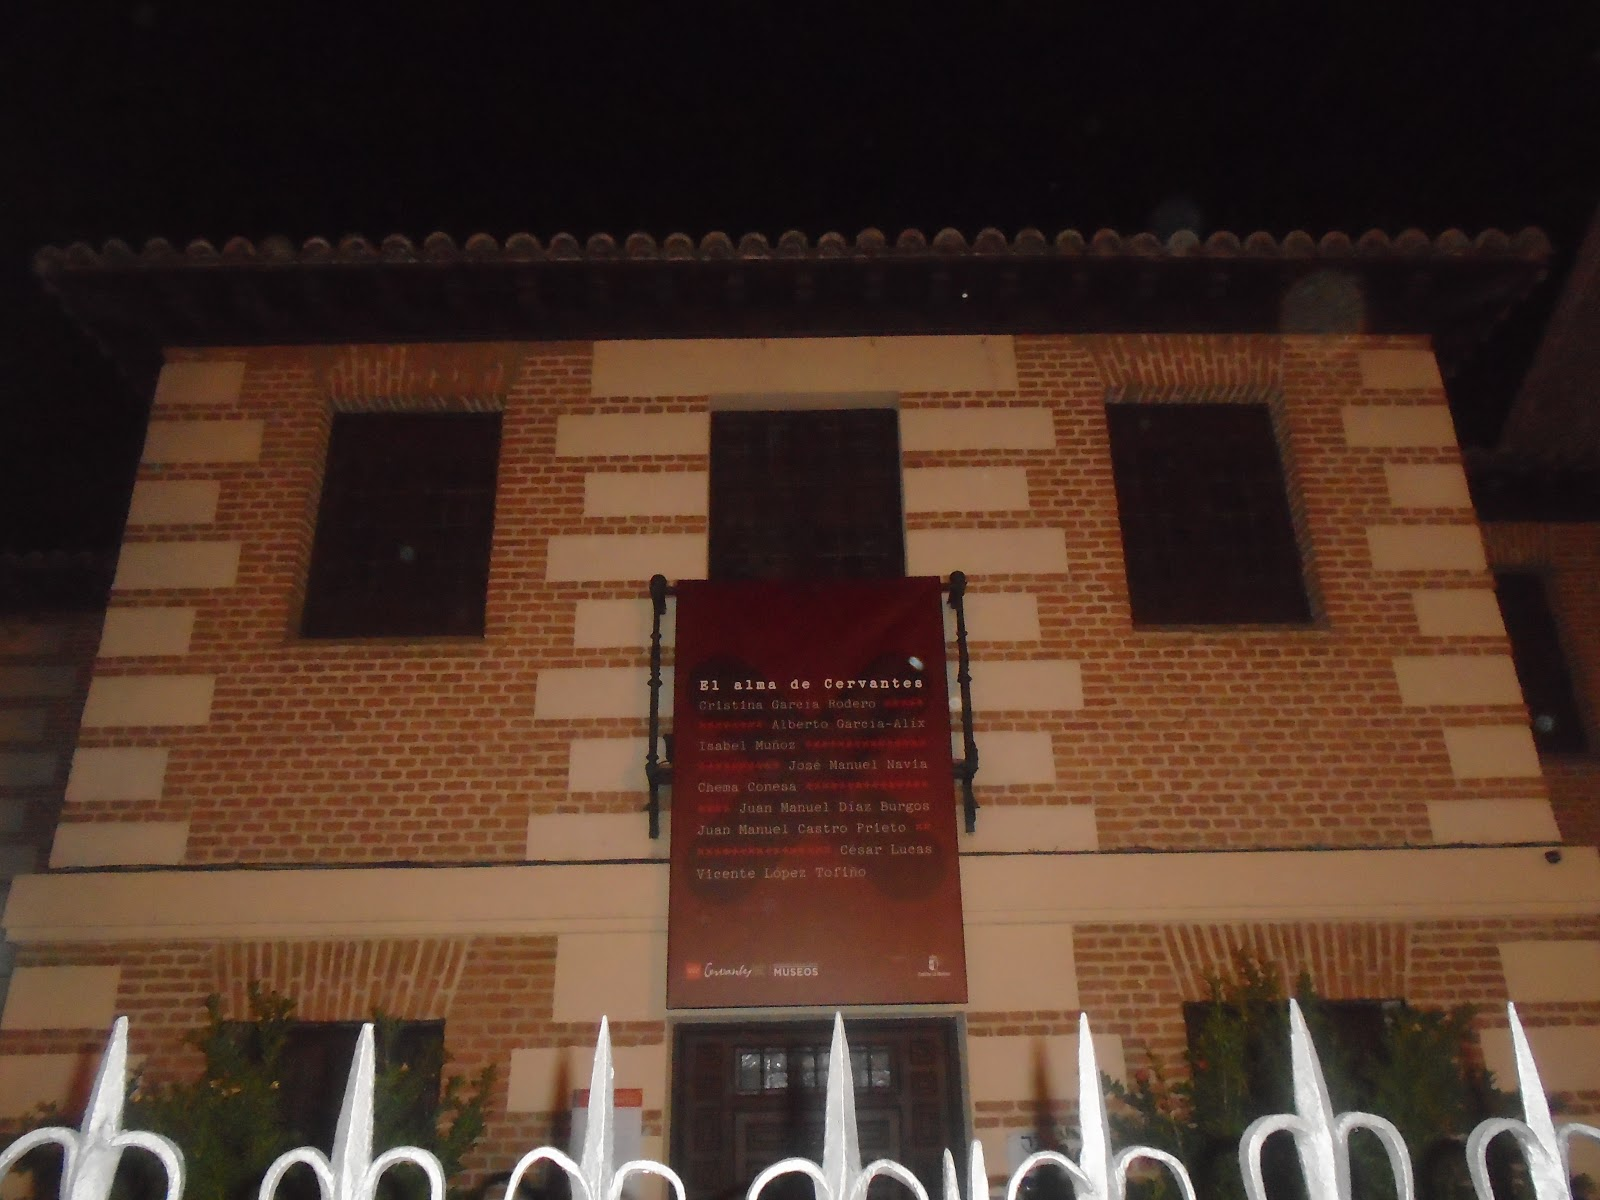 This Is The Modest House In Alcal� De Henares Where Miguel De Cervantes Was  Born On 29 September 1547 However, He Spent Much Of His Childhood Moving  From